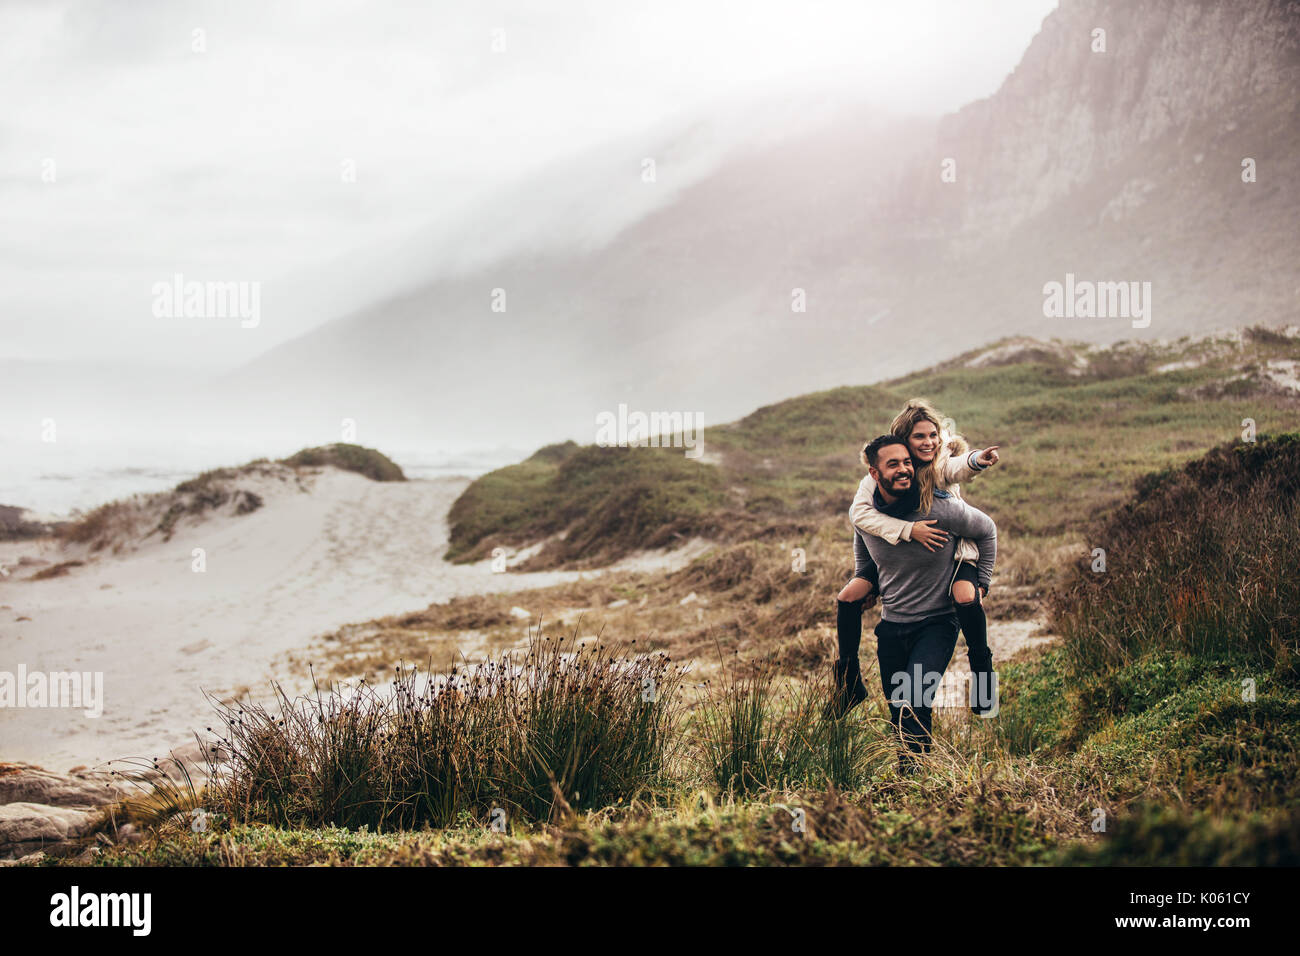 Outdoor shot of man giving woman piggyback on winter beach. Man carrying woman oh his back pointing away. Stock Photo